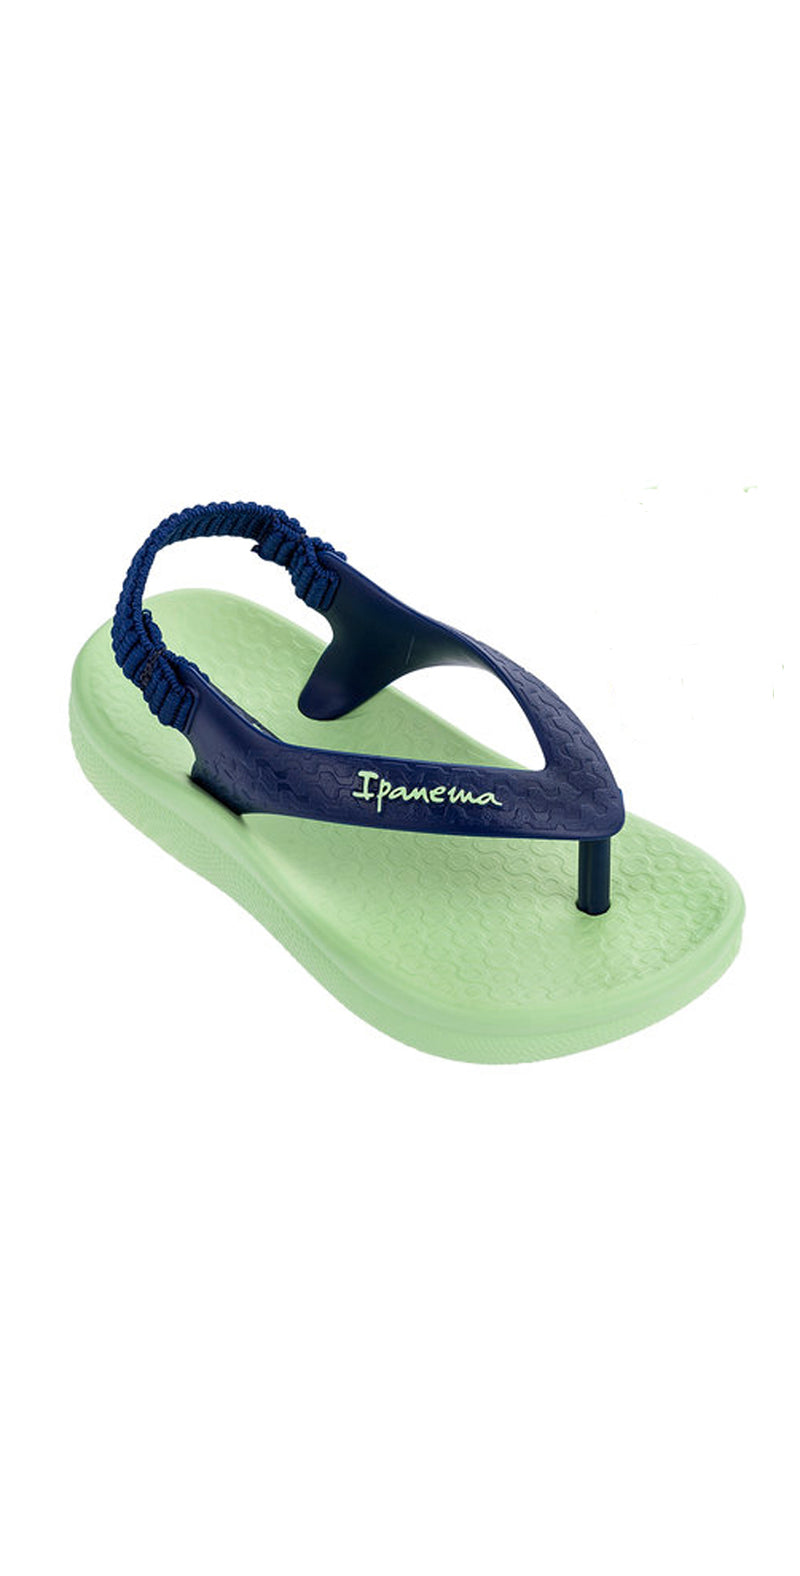 iPanema Ana Tan Baby Sandals Green